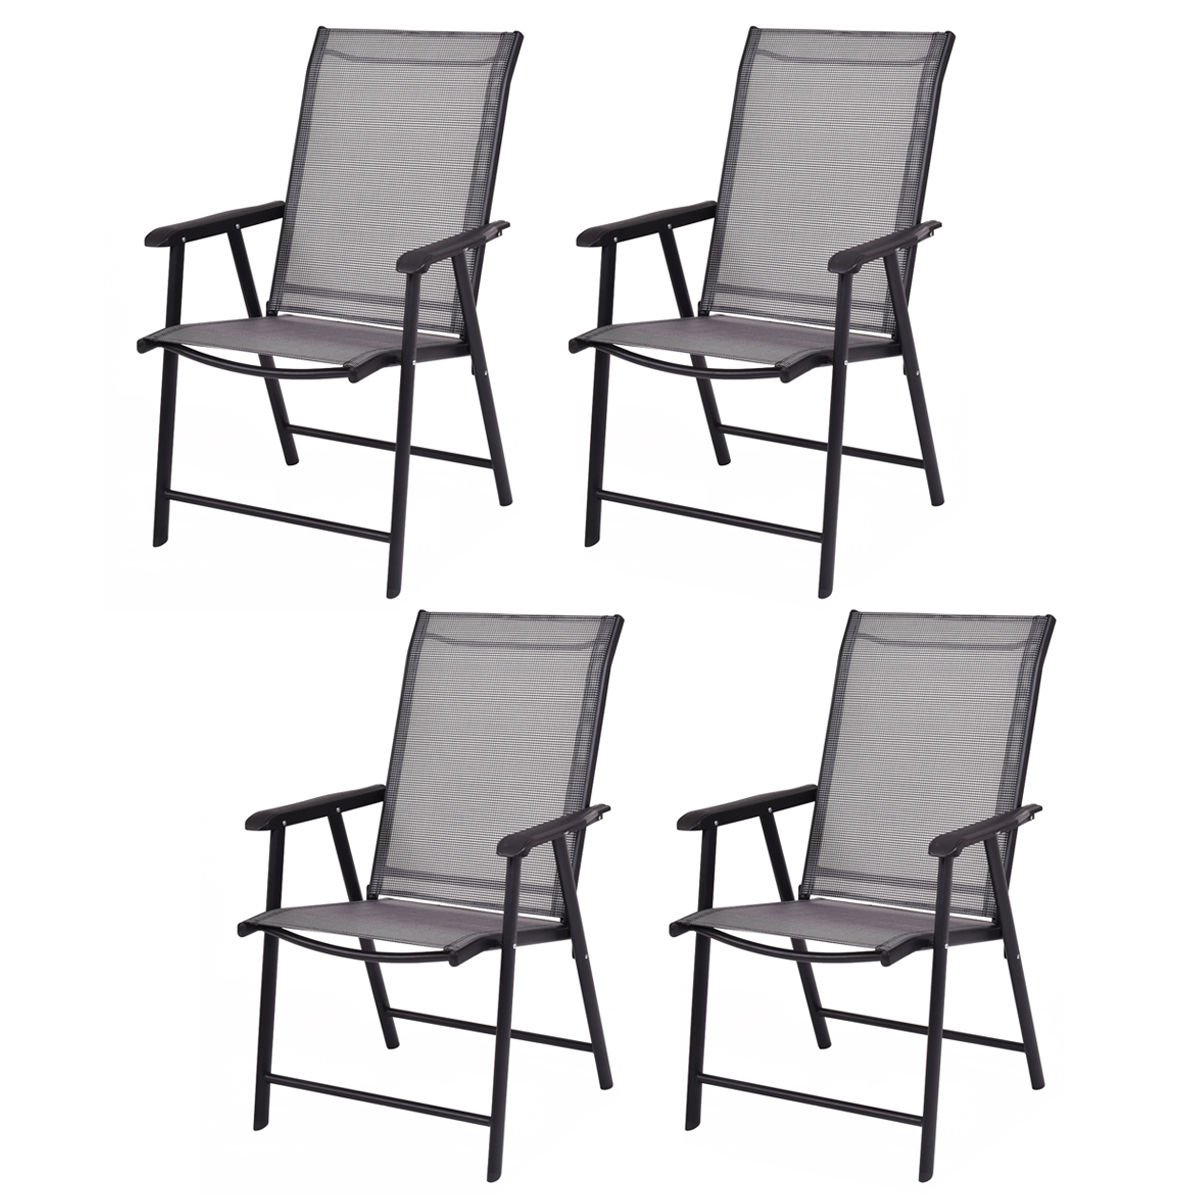 Giantex 4-Pack Patio Folding Chairs Portable for Outdoor Camping, Beach, Deck Dining Chair w/ Armrest, Grey